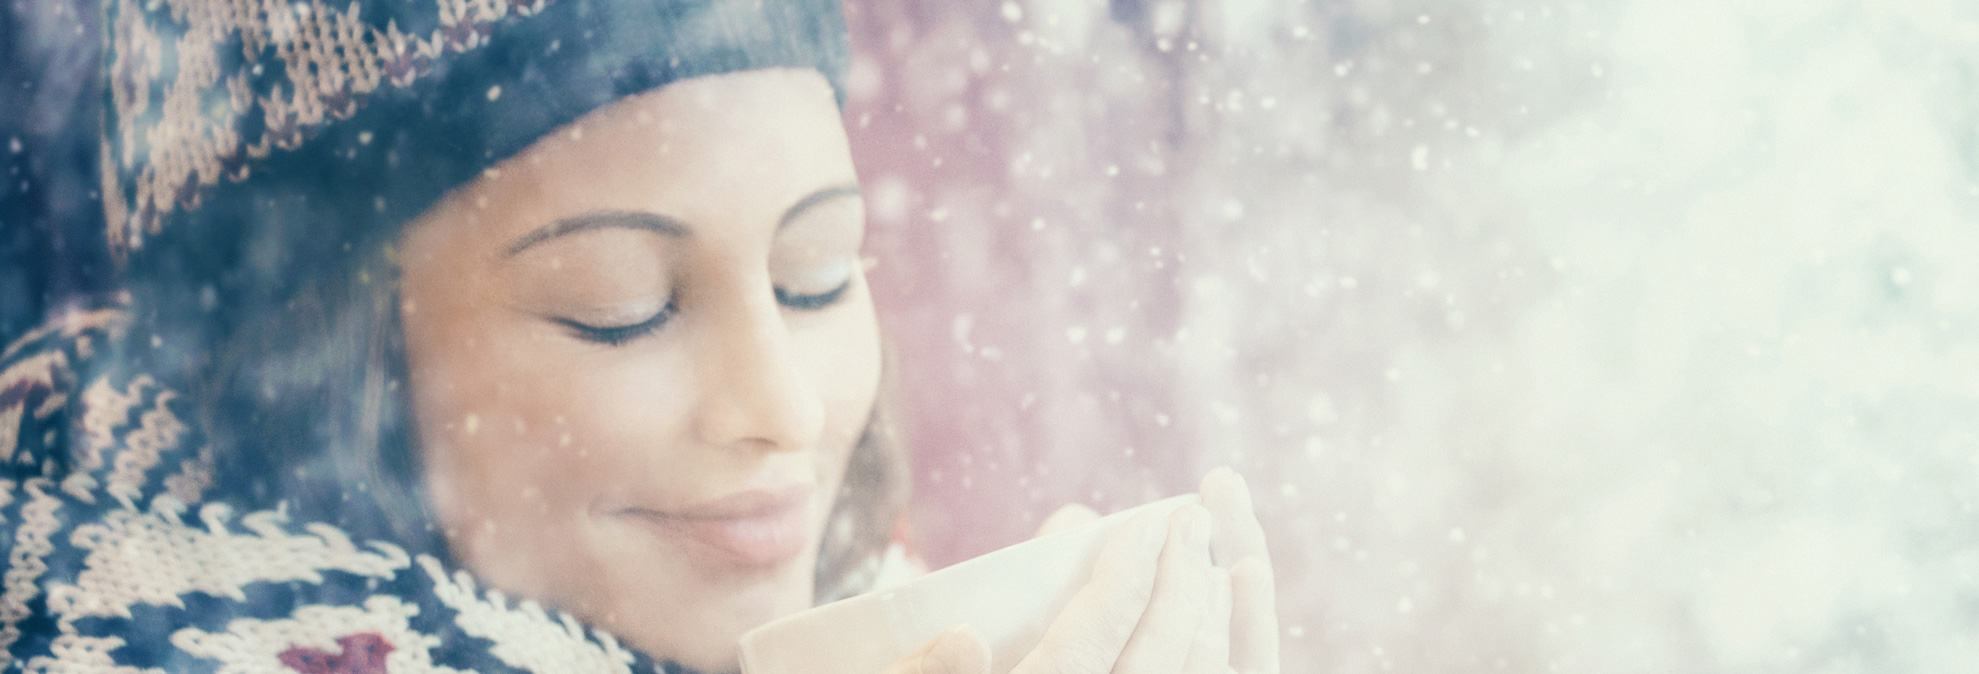 How to Prevent Dry Skin This Winter